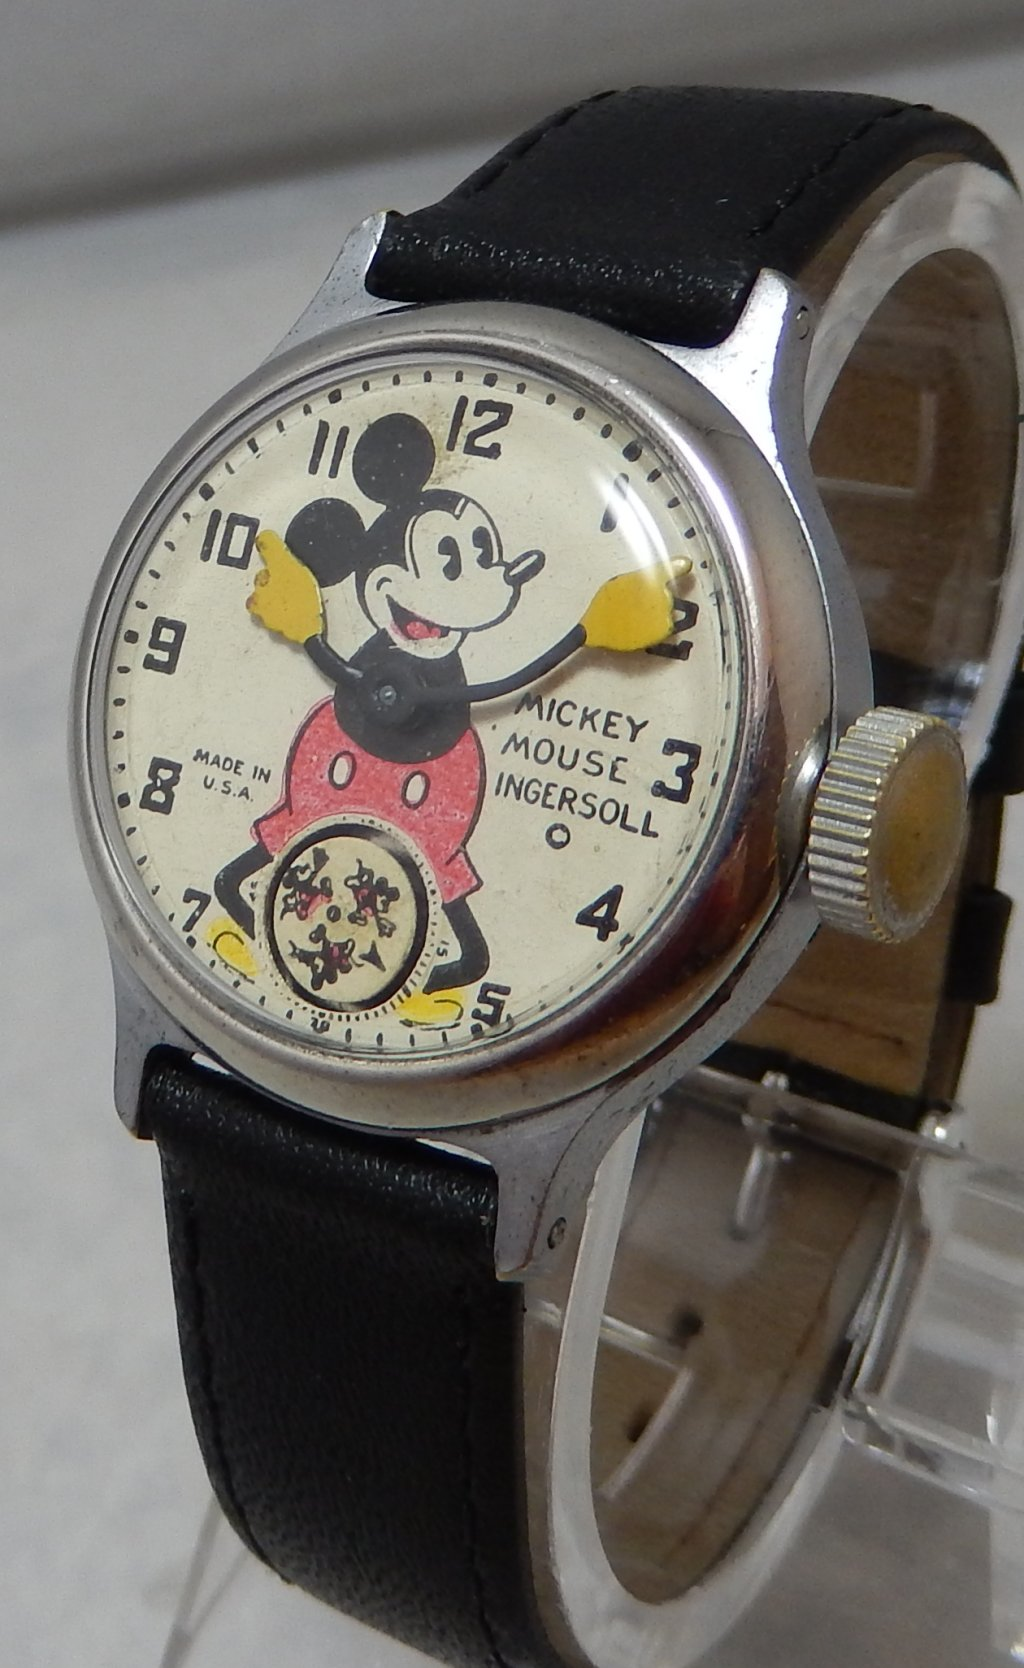 Mickey Mouse Watch Value >> Details About 1930 S Ingersoll Mickey Mouse Watch Serviced And Wearable C 1935 Model